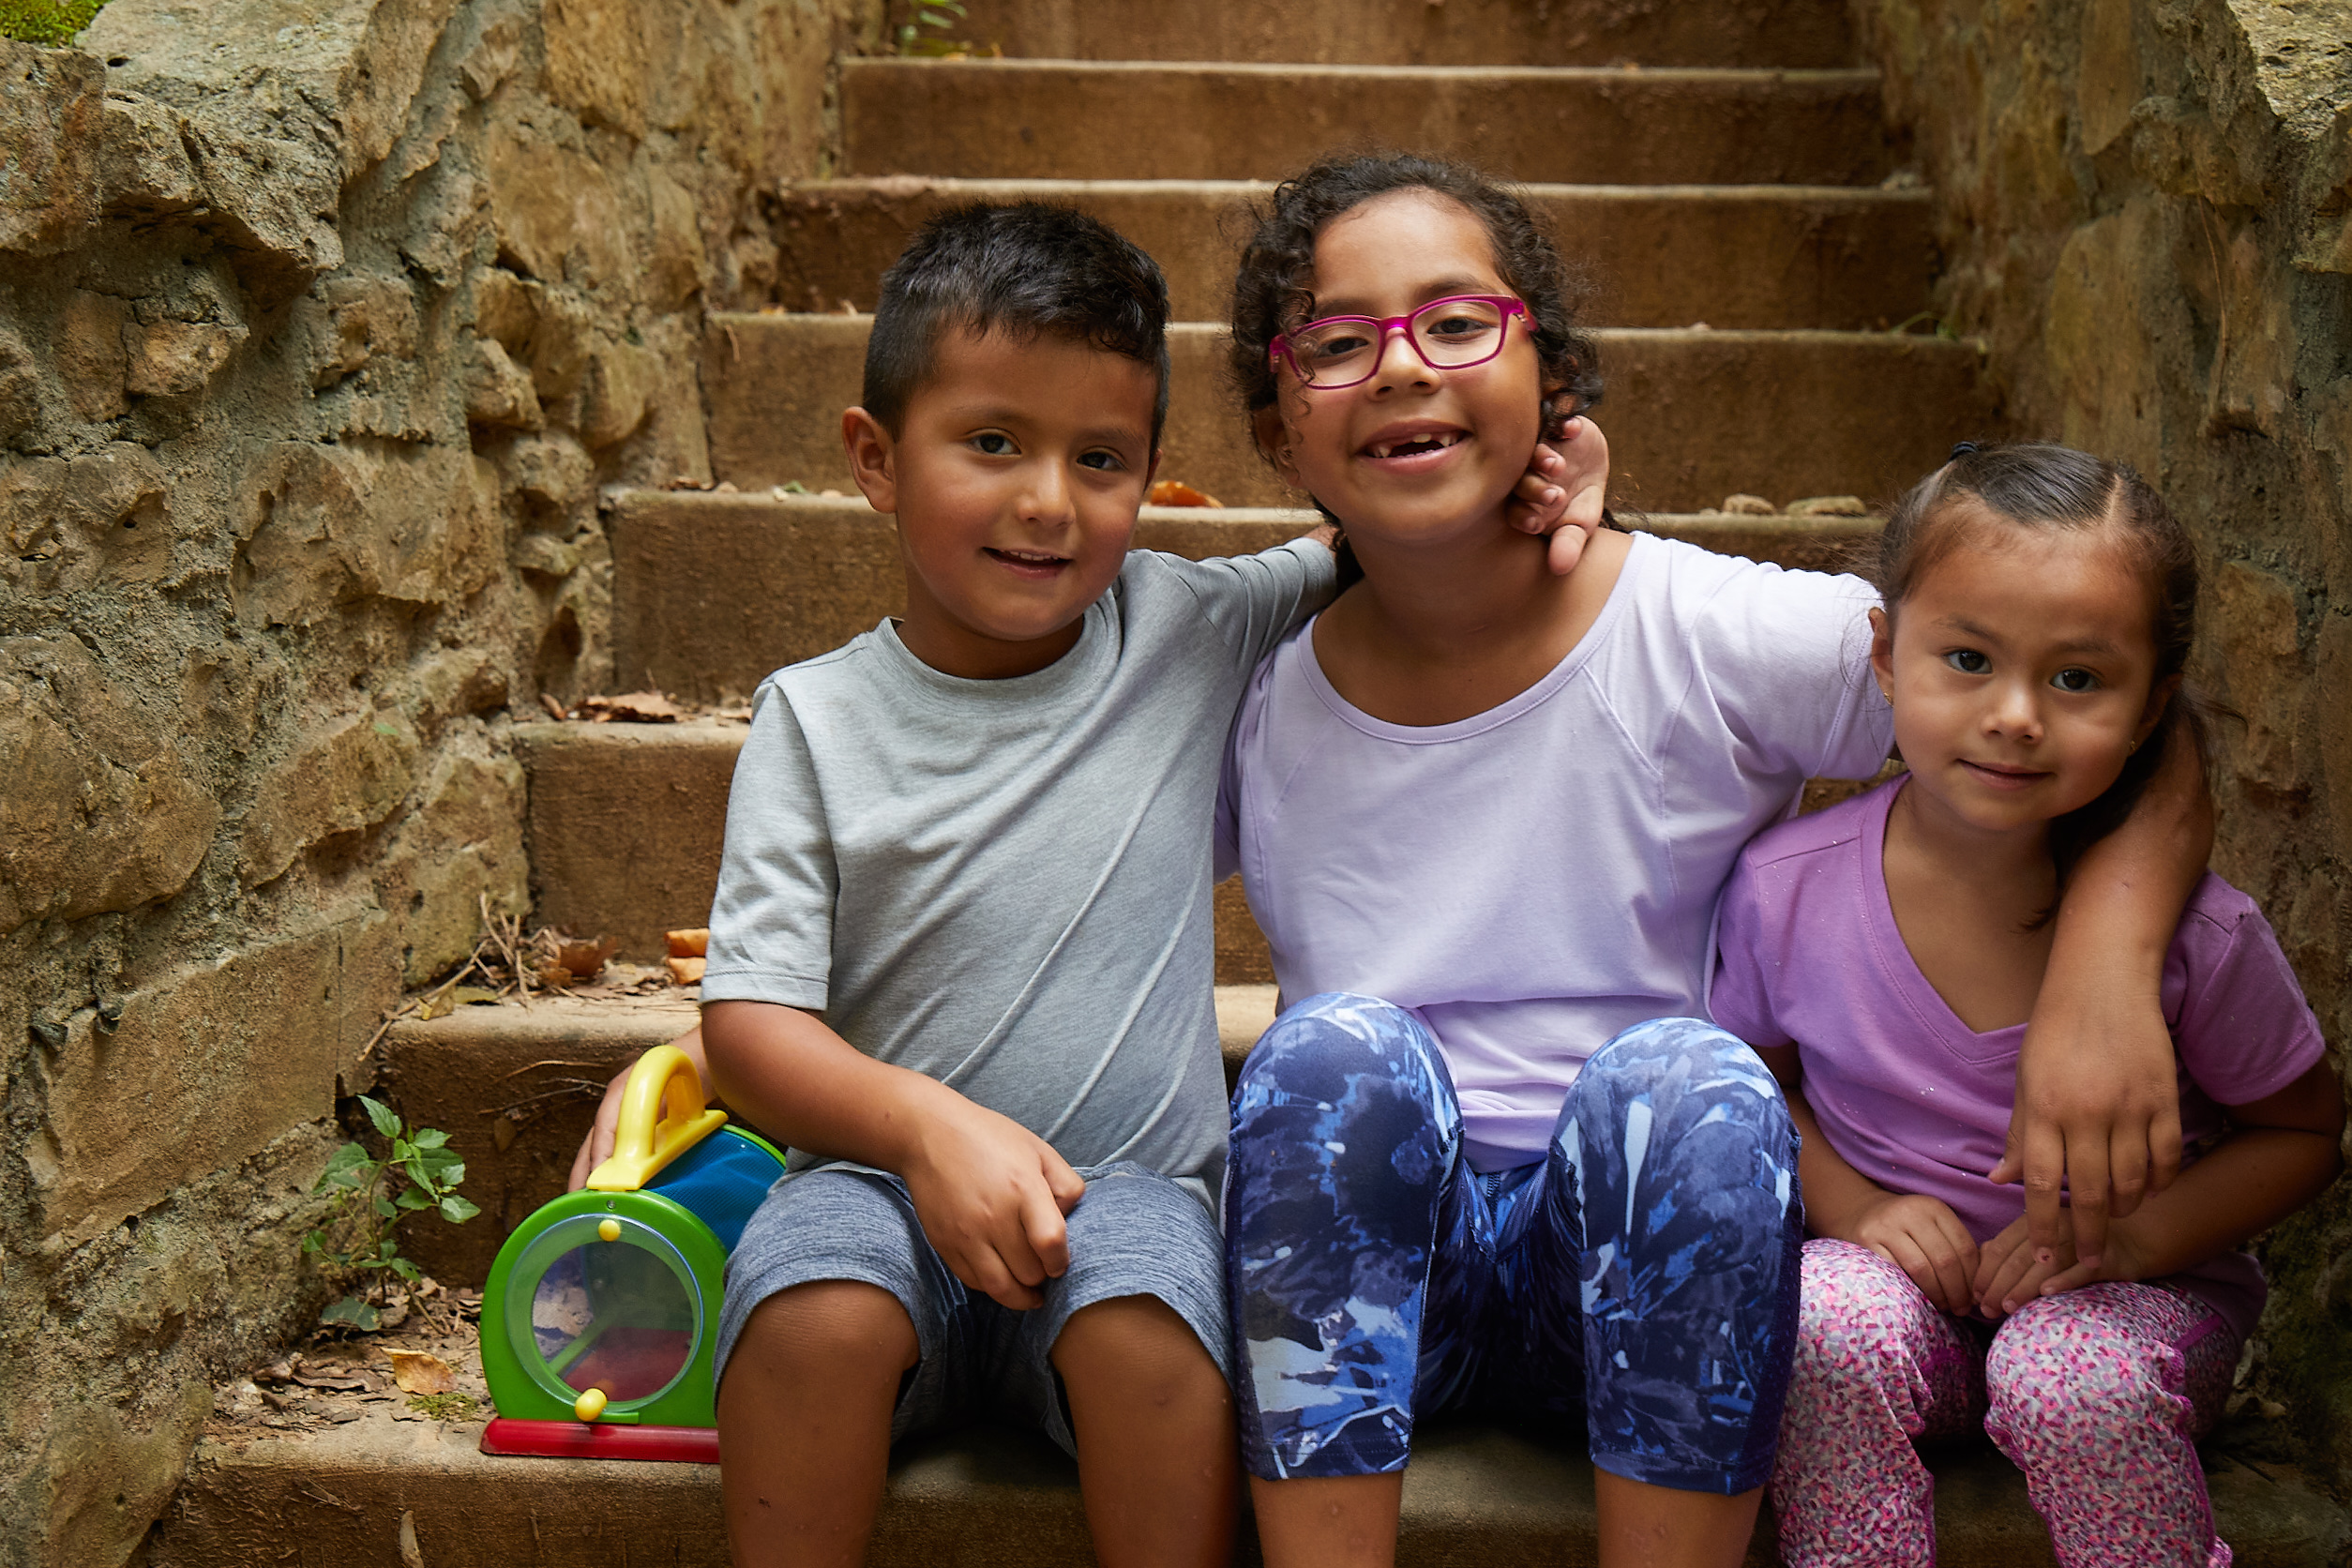 Natalia smiling and sitting with her siblings on stone steps